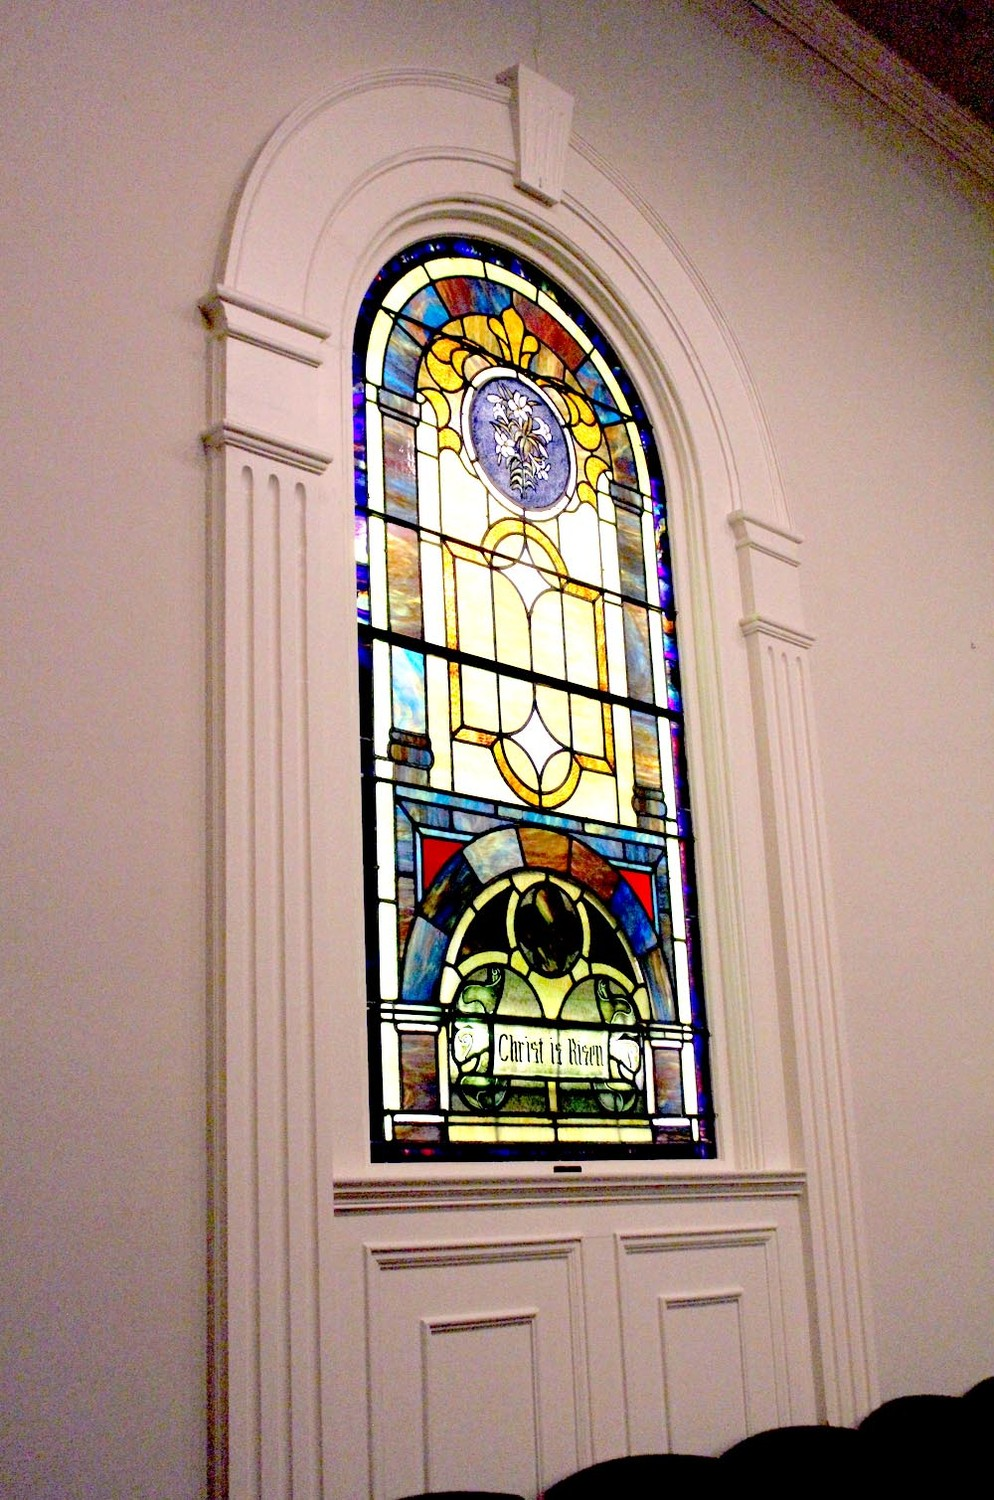 THIS STAINED GLASS hangs in the choir area of the church.